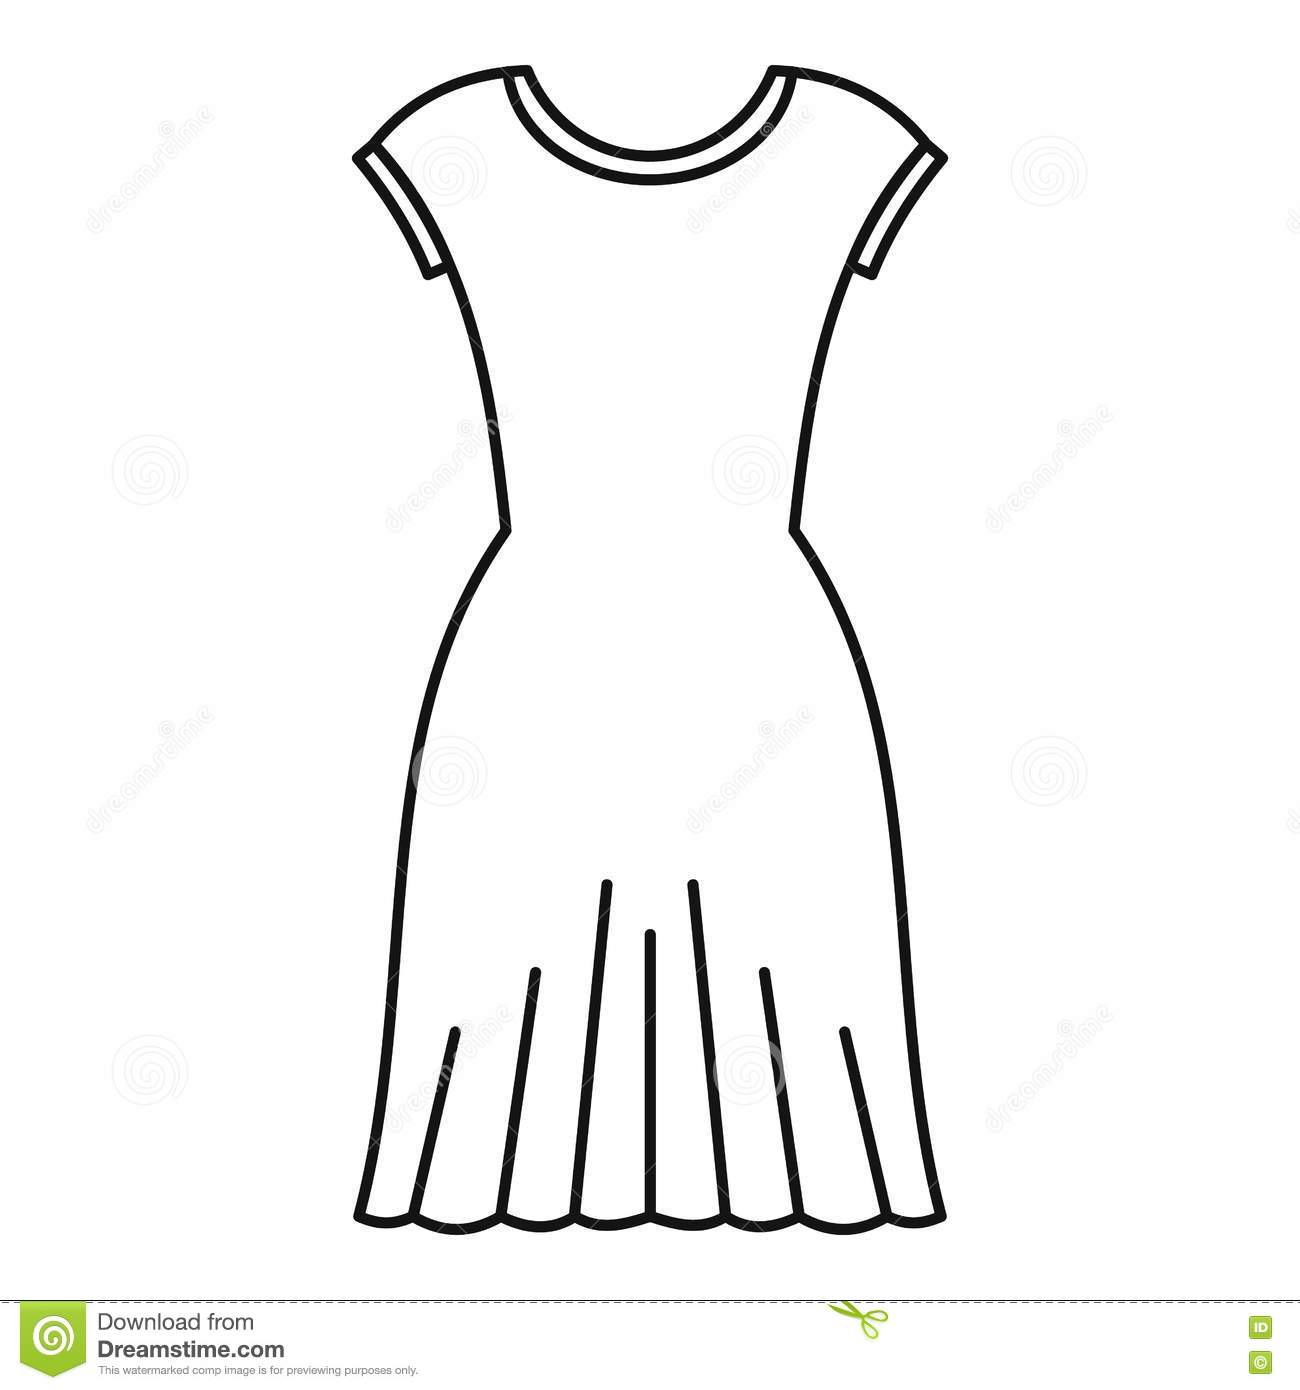 Creative Outline Of A Woman In A Dress Wedding Dresses Archives  Coloring